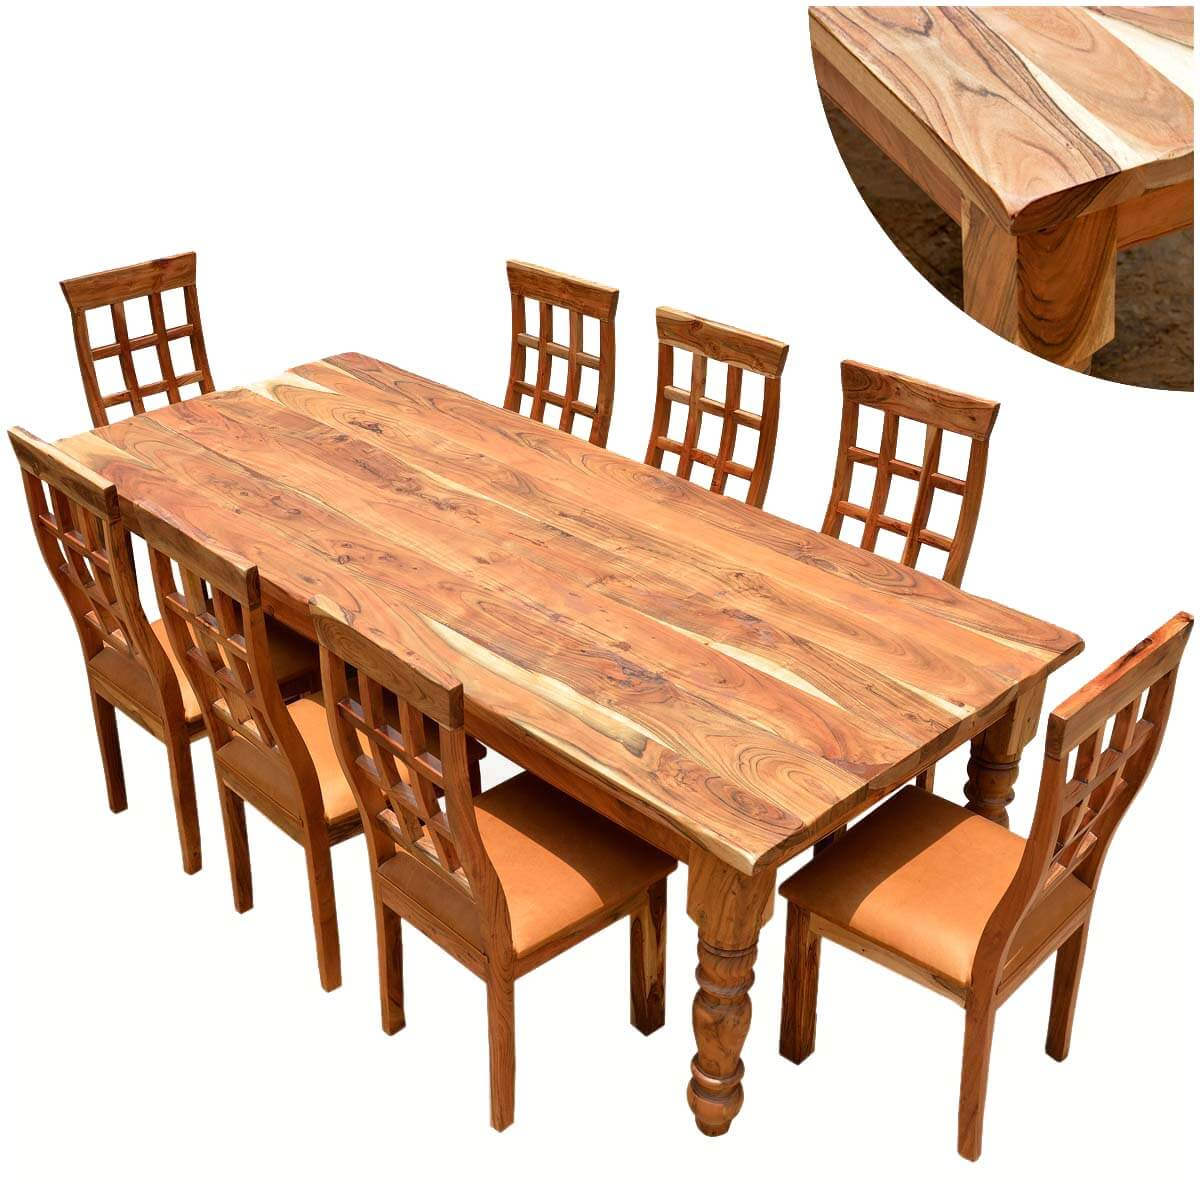 Rustic Furniture Farmhouse Solid Wood Dining Table Chair Set. Furniture Farmhouse Solid Wood Dining Table Chair Set